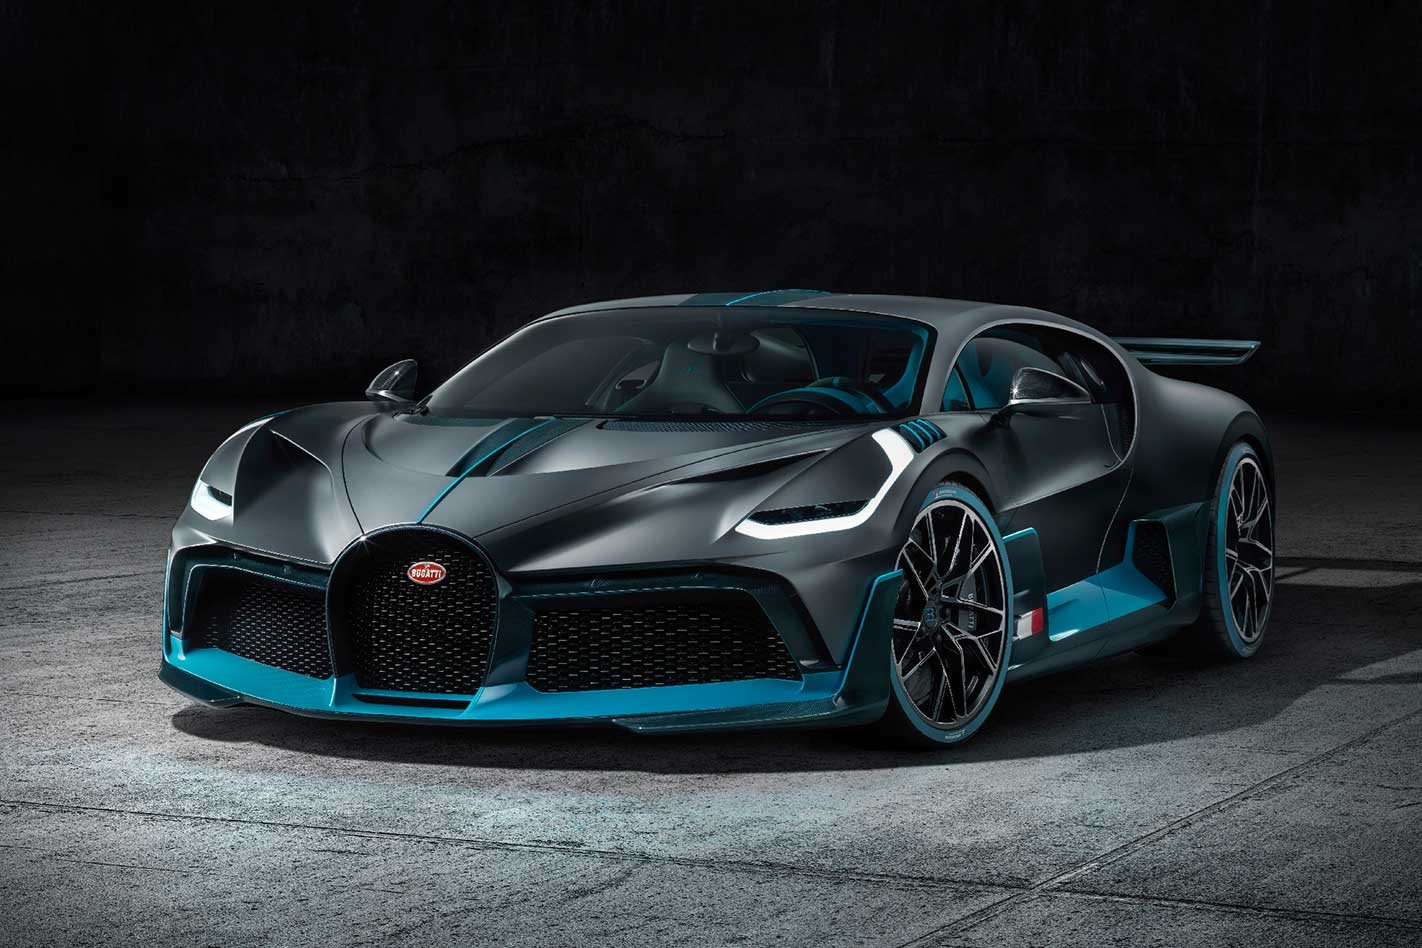 2019 Bugatti Divo unveiled at Monterey Car Week